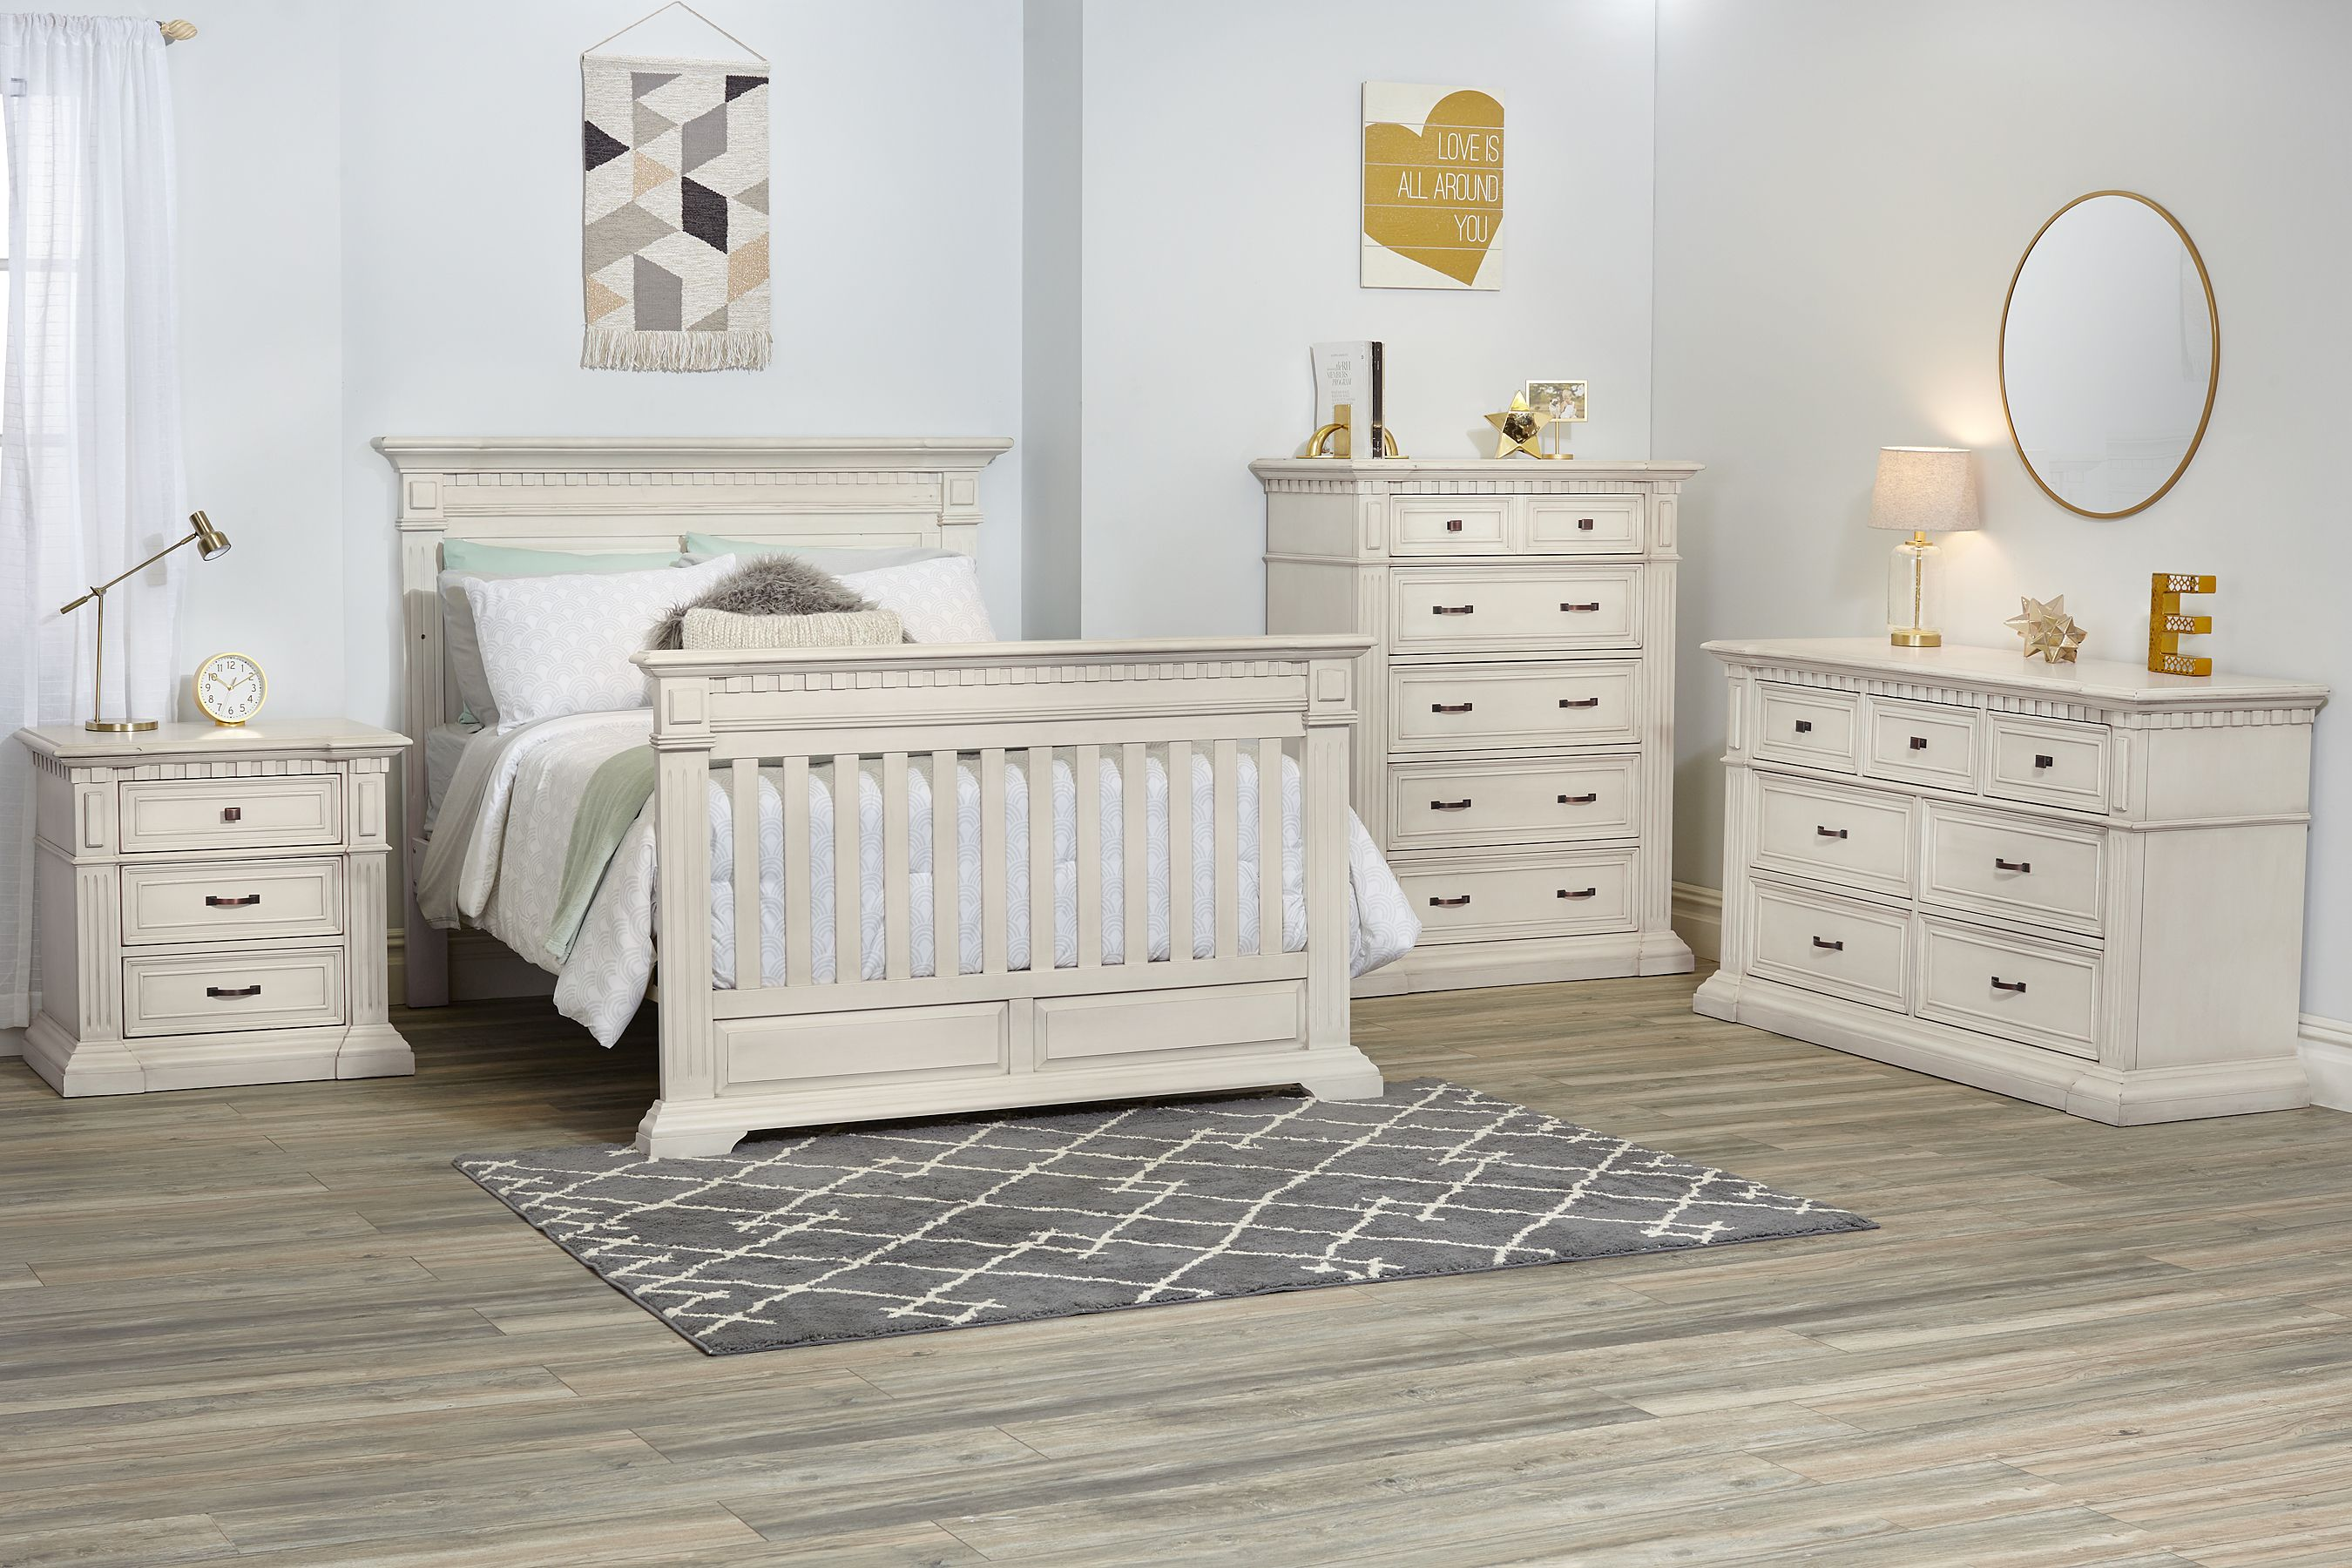 Kingsley Venetian Collection In Antique White Nursery Furniture Collections